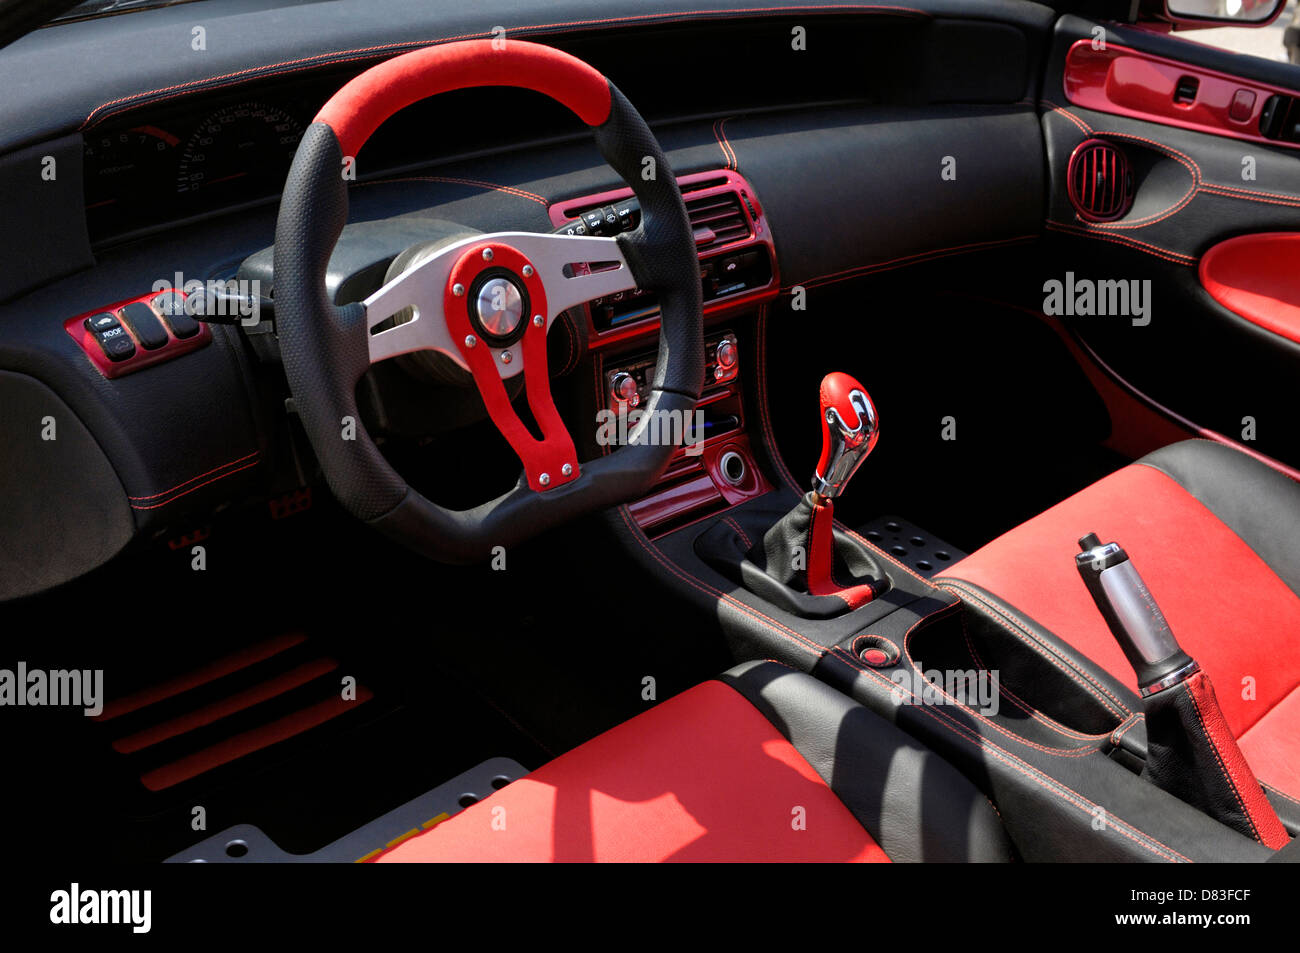 custom car red and black leather interior stock photo royalty free image 56626319 alamy. Black Bedroom Furniture Sets. Home Design Ideas